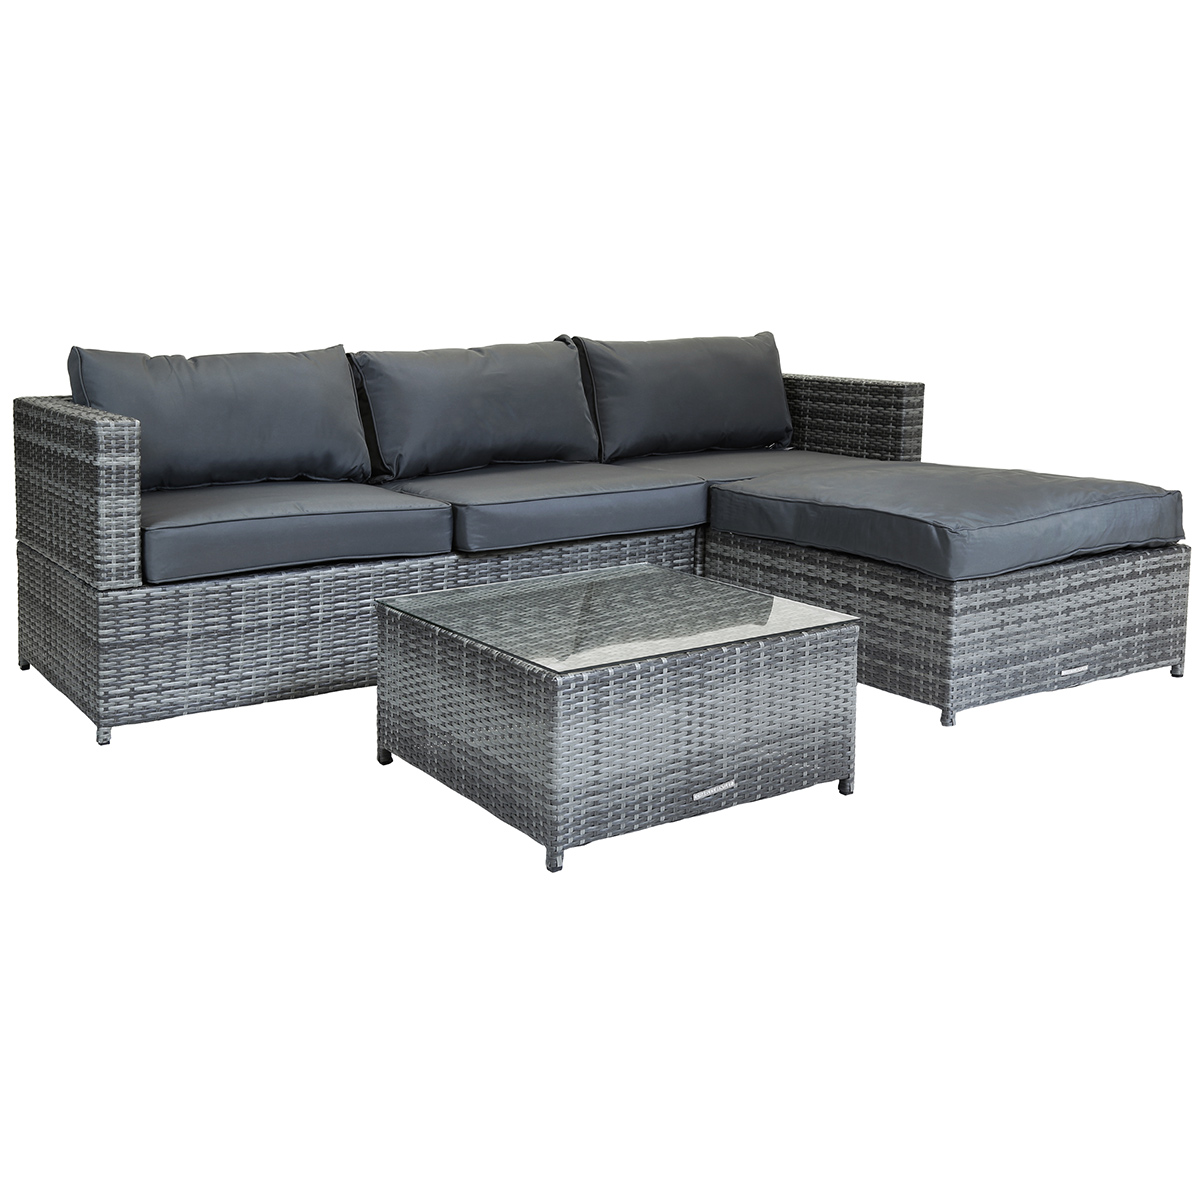 charles bentley l shaped 3 seater rattan furniture lounge. Black Bedroom Furniture Sets. Home Design Ideas